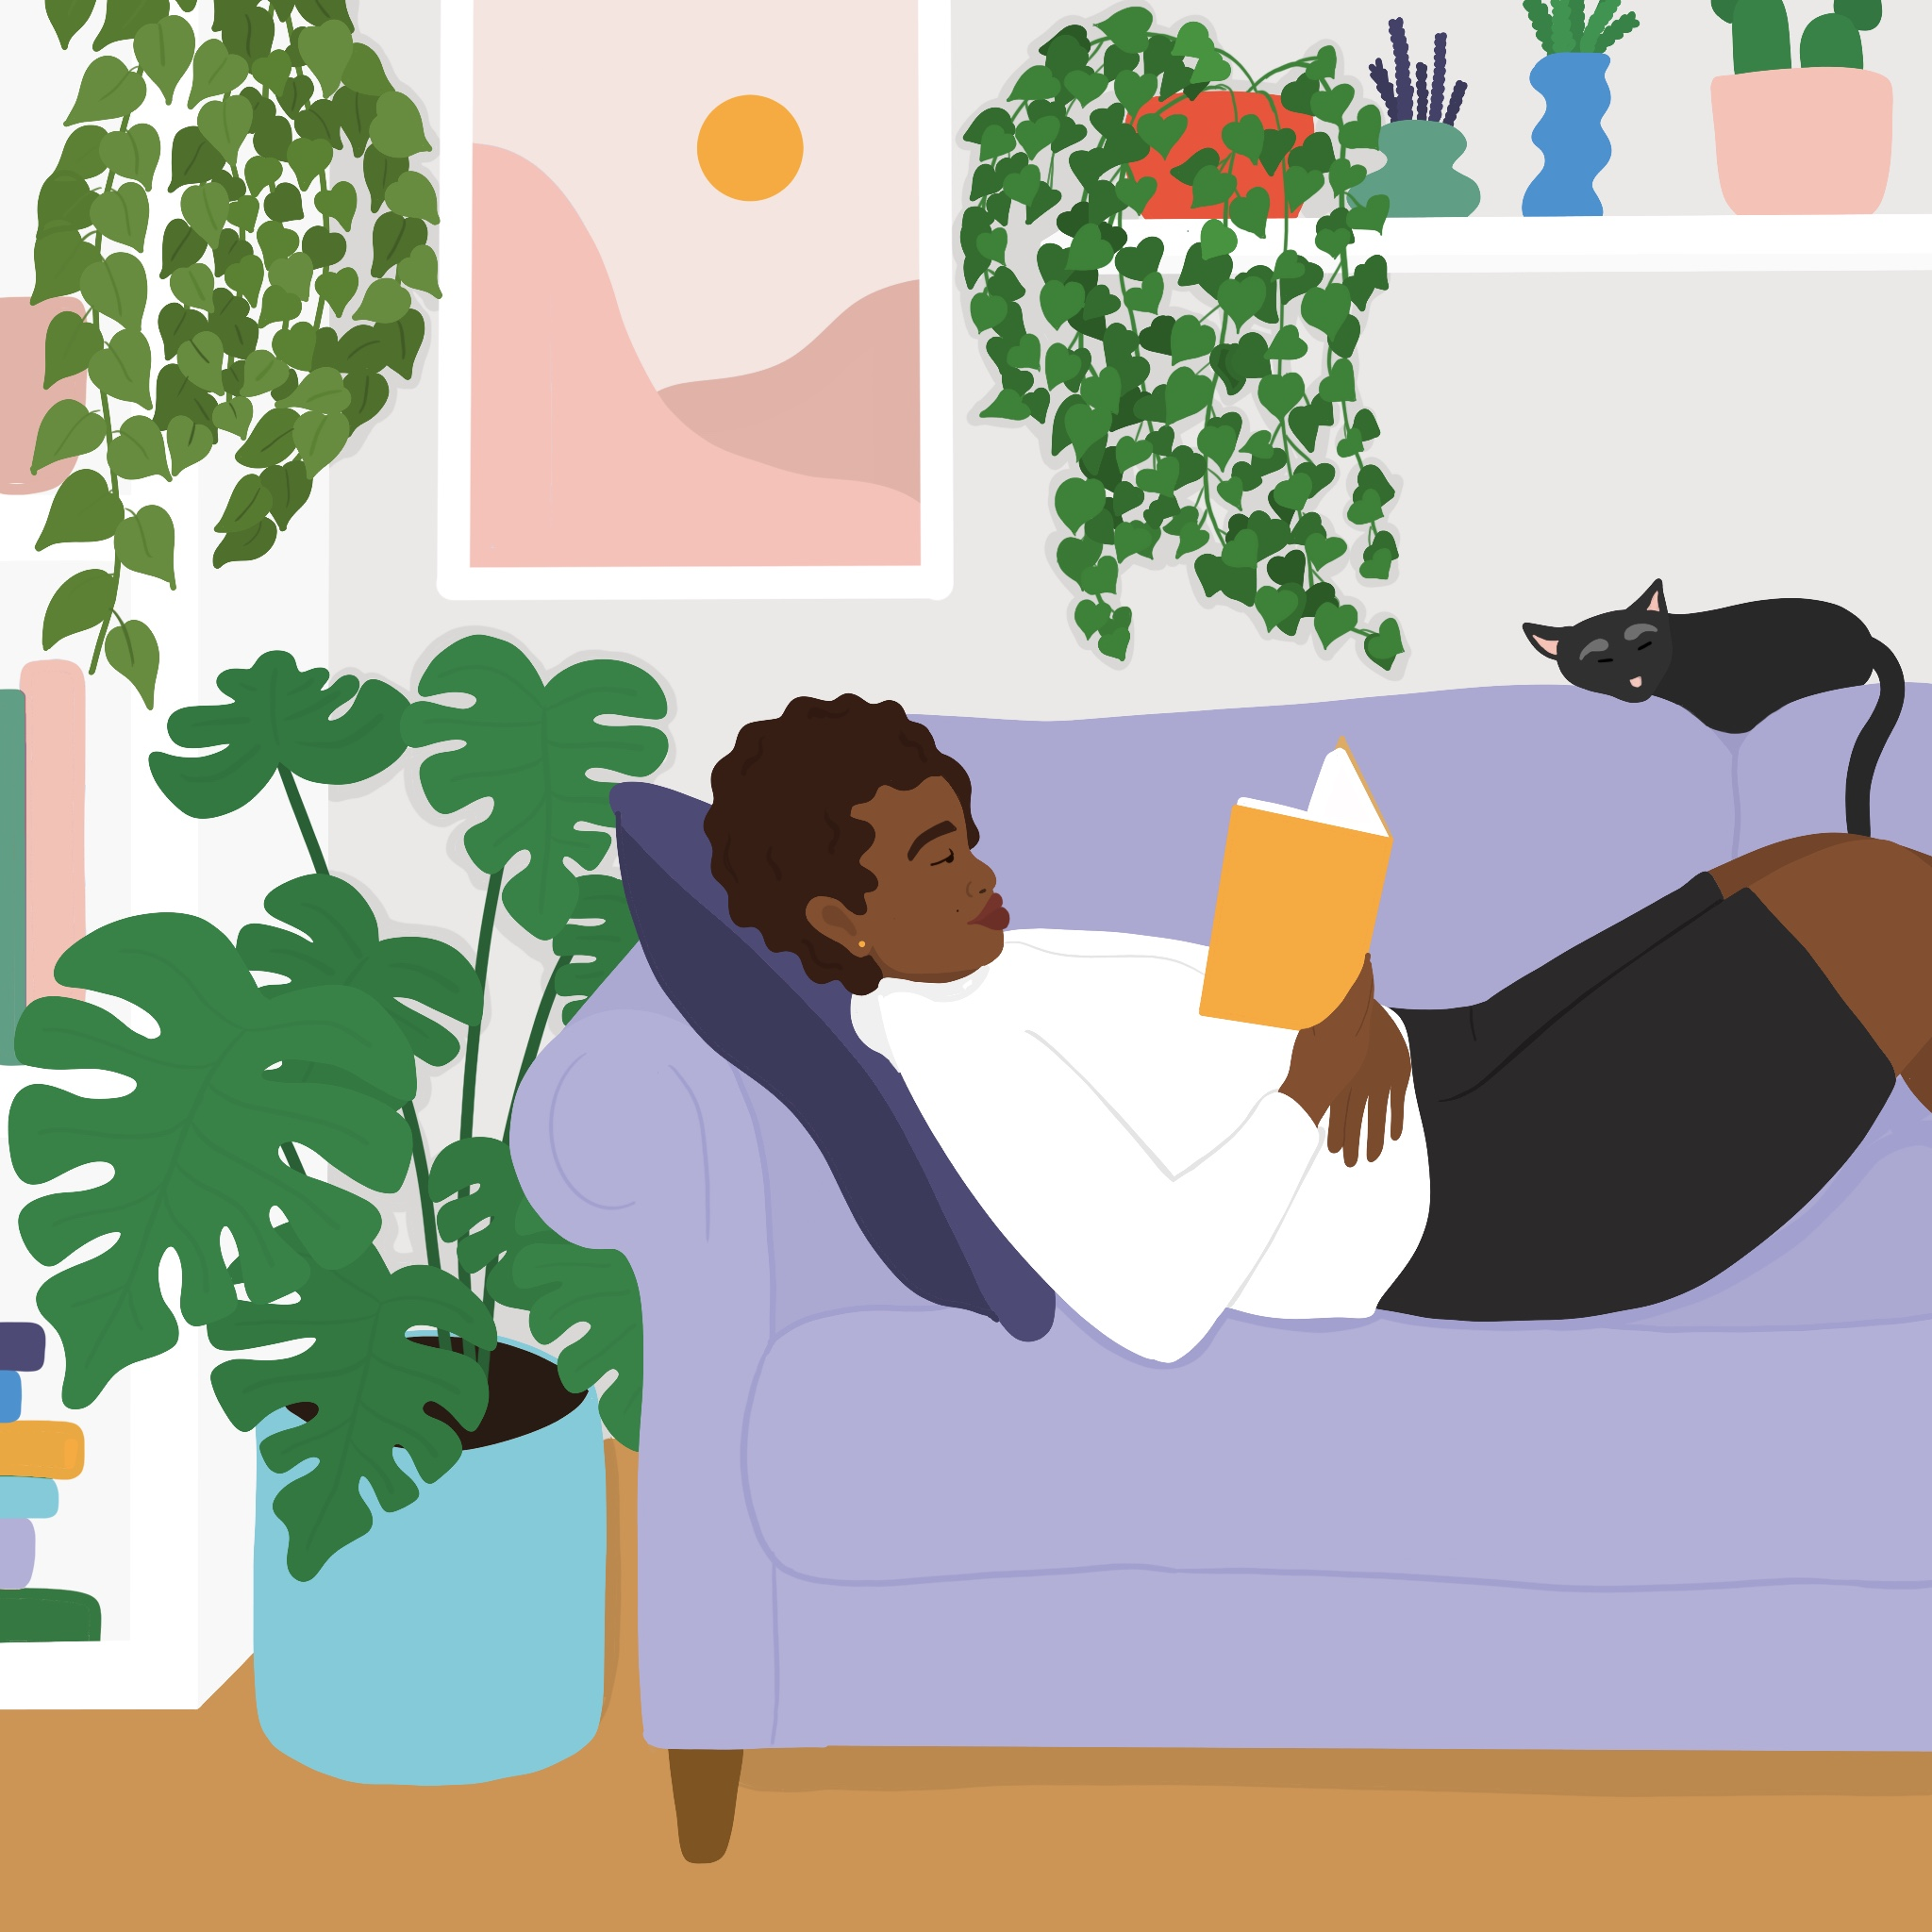 A woman reads on a couch surrounded by plants and a sleeping cat.